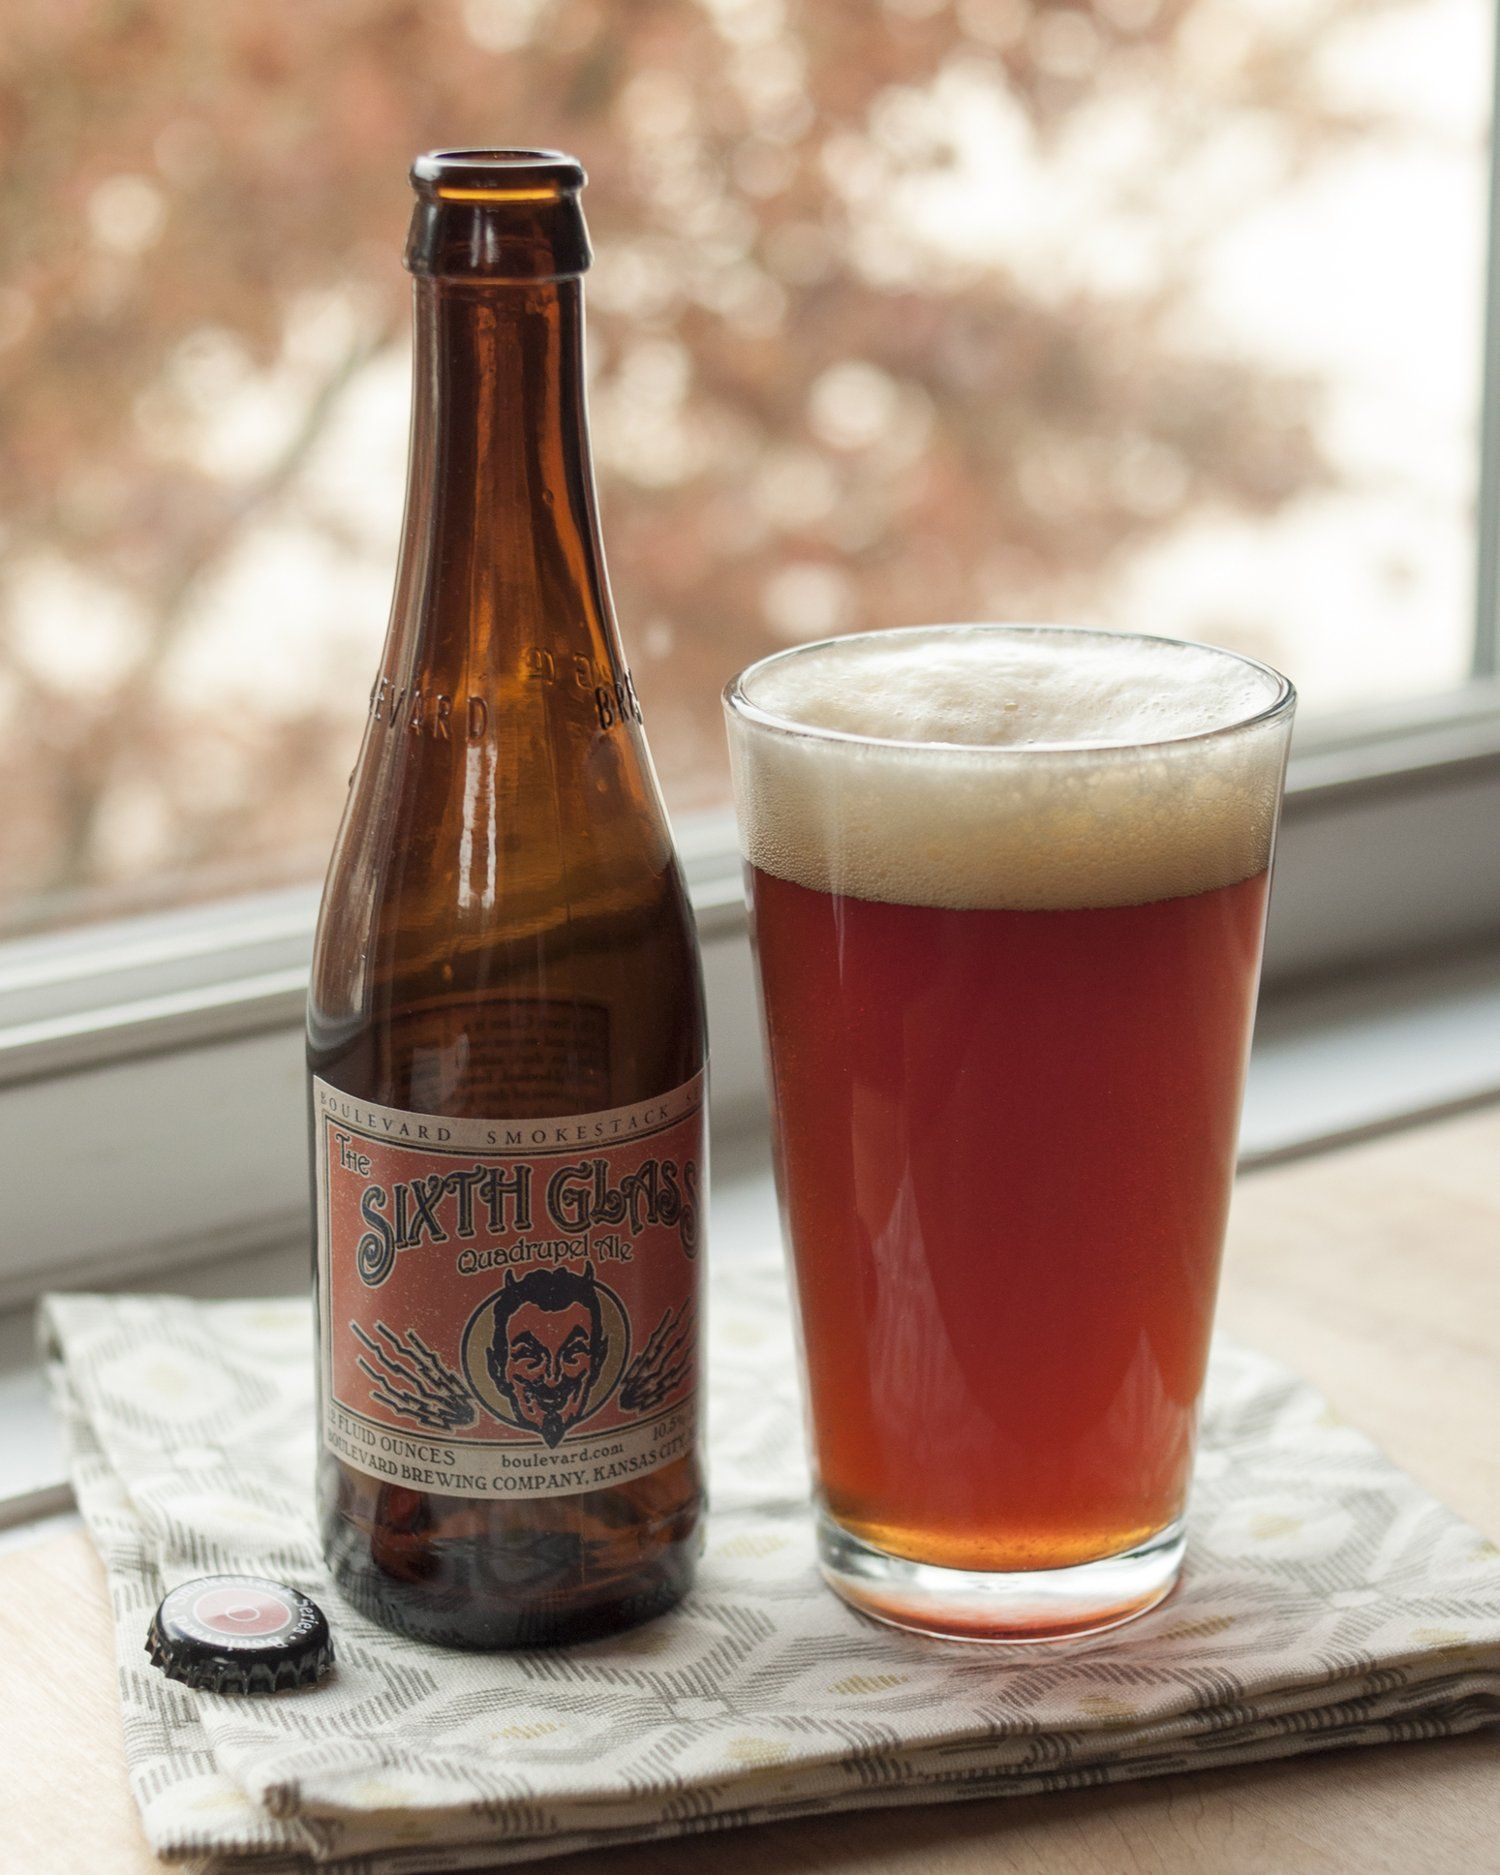 Beer Review The Sixth Glass Quadrupel Ale From Boulevard Brewing Company Beer Brewing Company Malt Beer